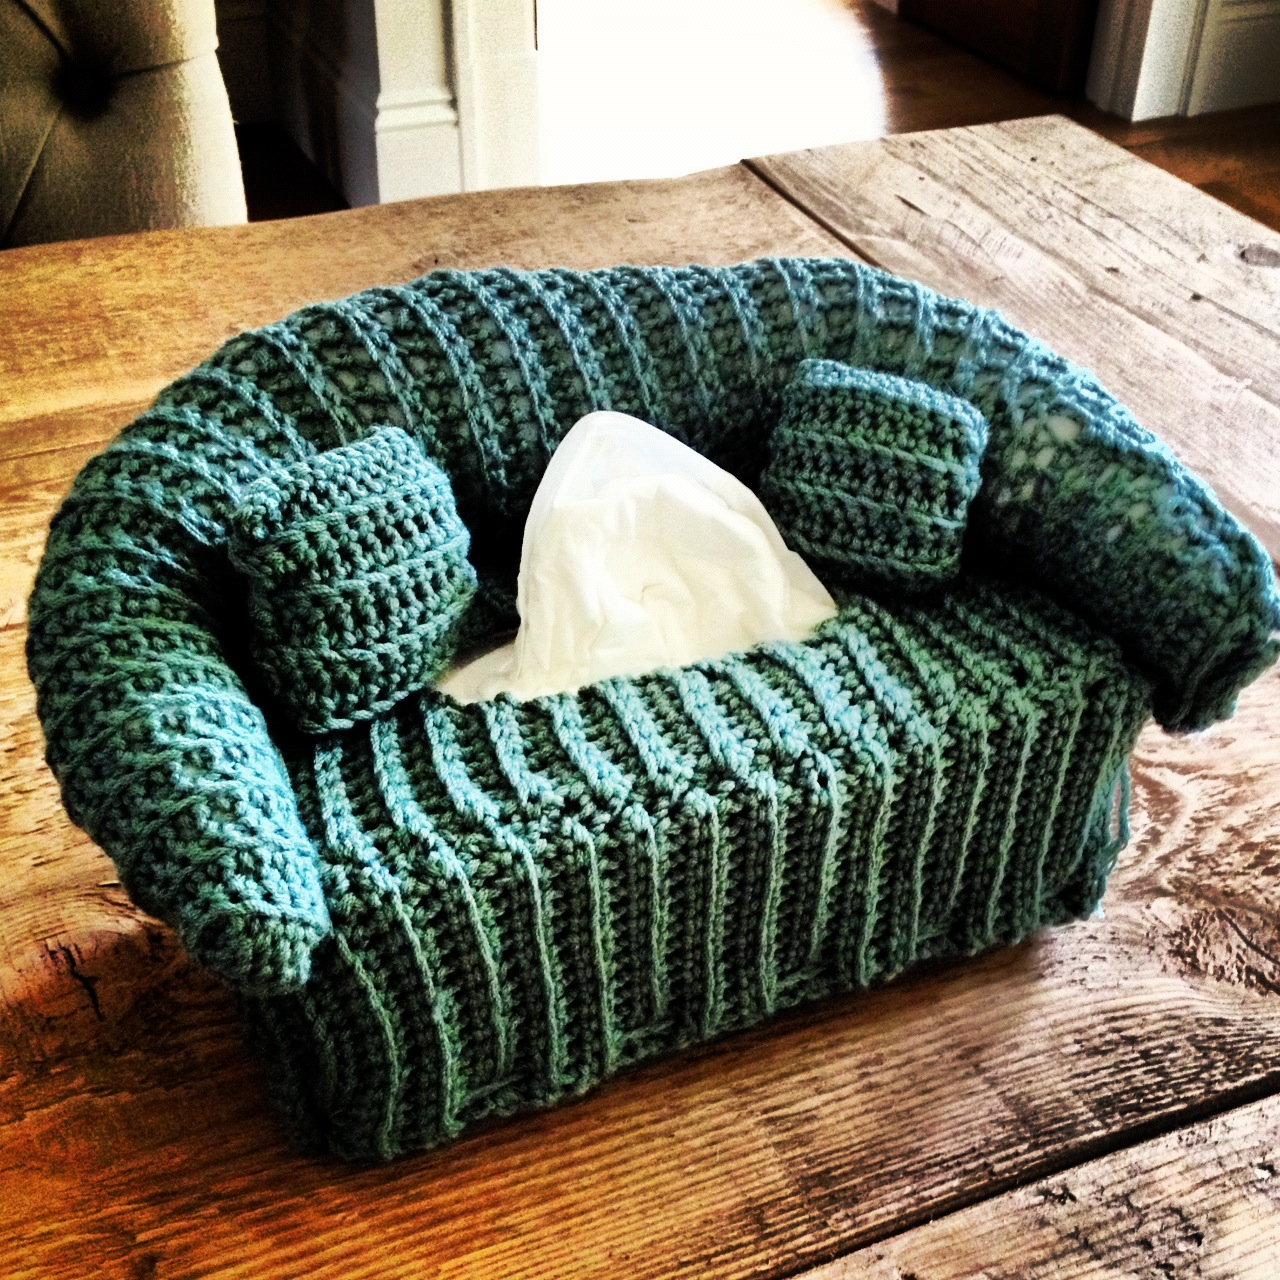 Annoos Crochet World Cool Tissue Couch Box